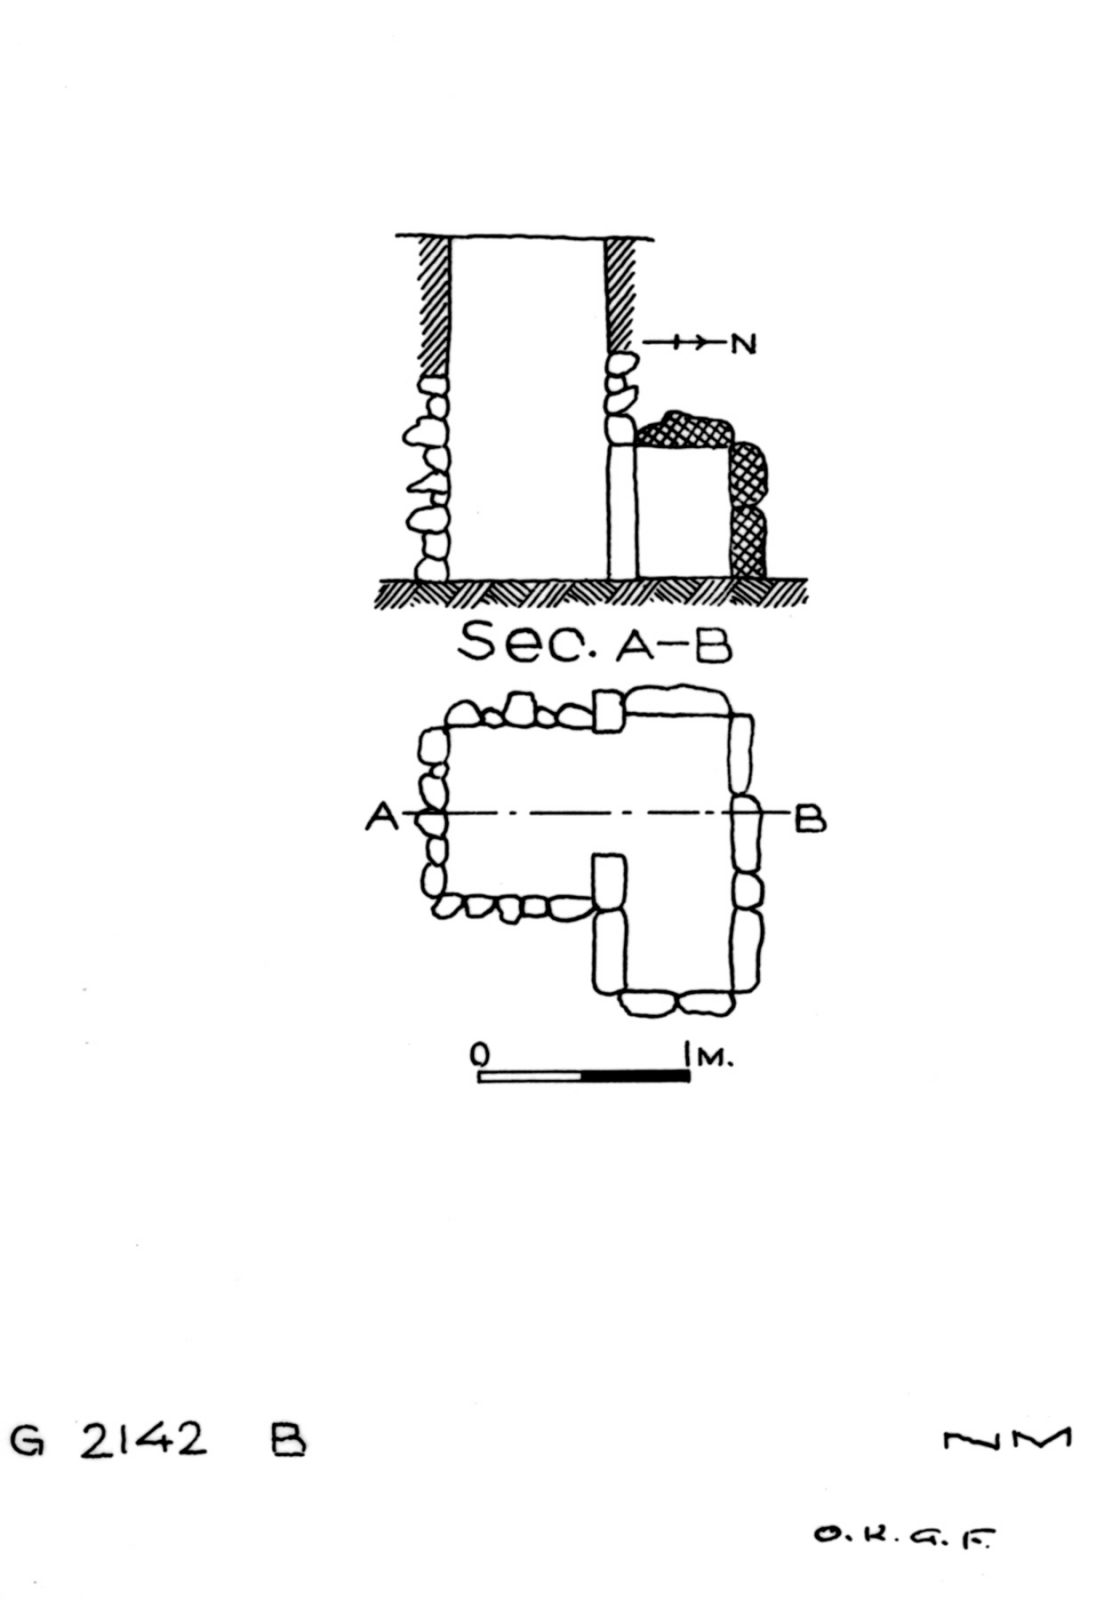 Maps and plans: G 2142, Shaft B